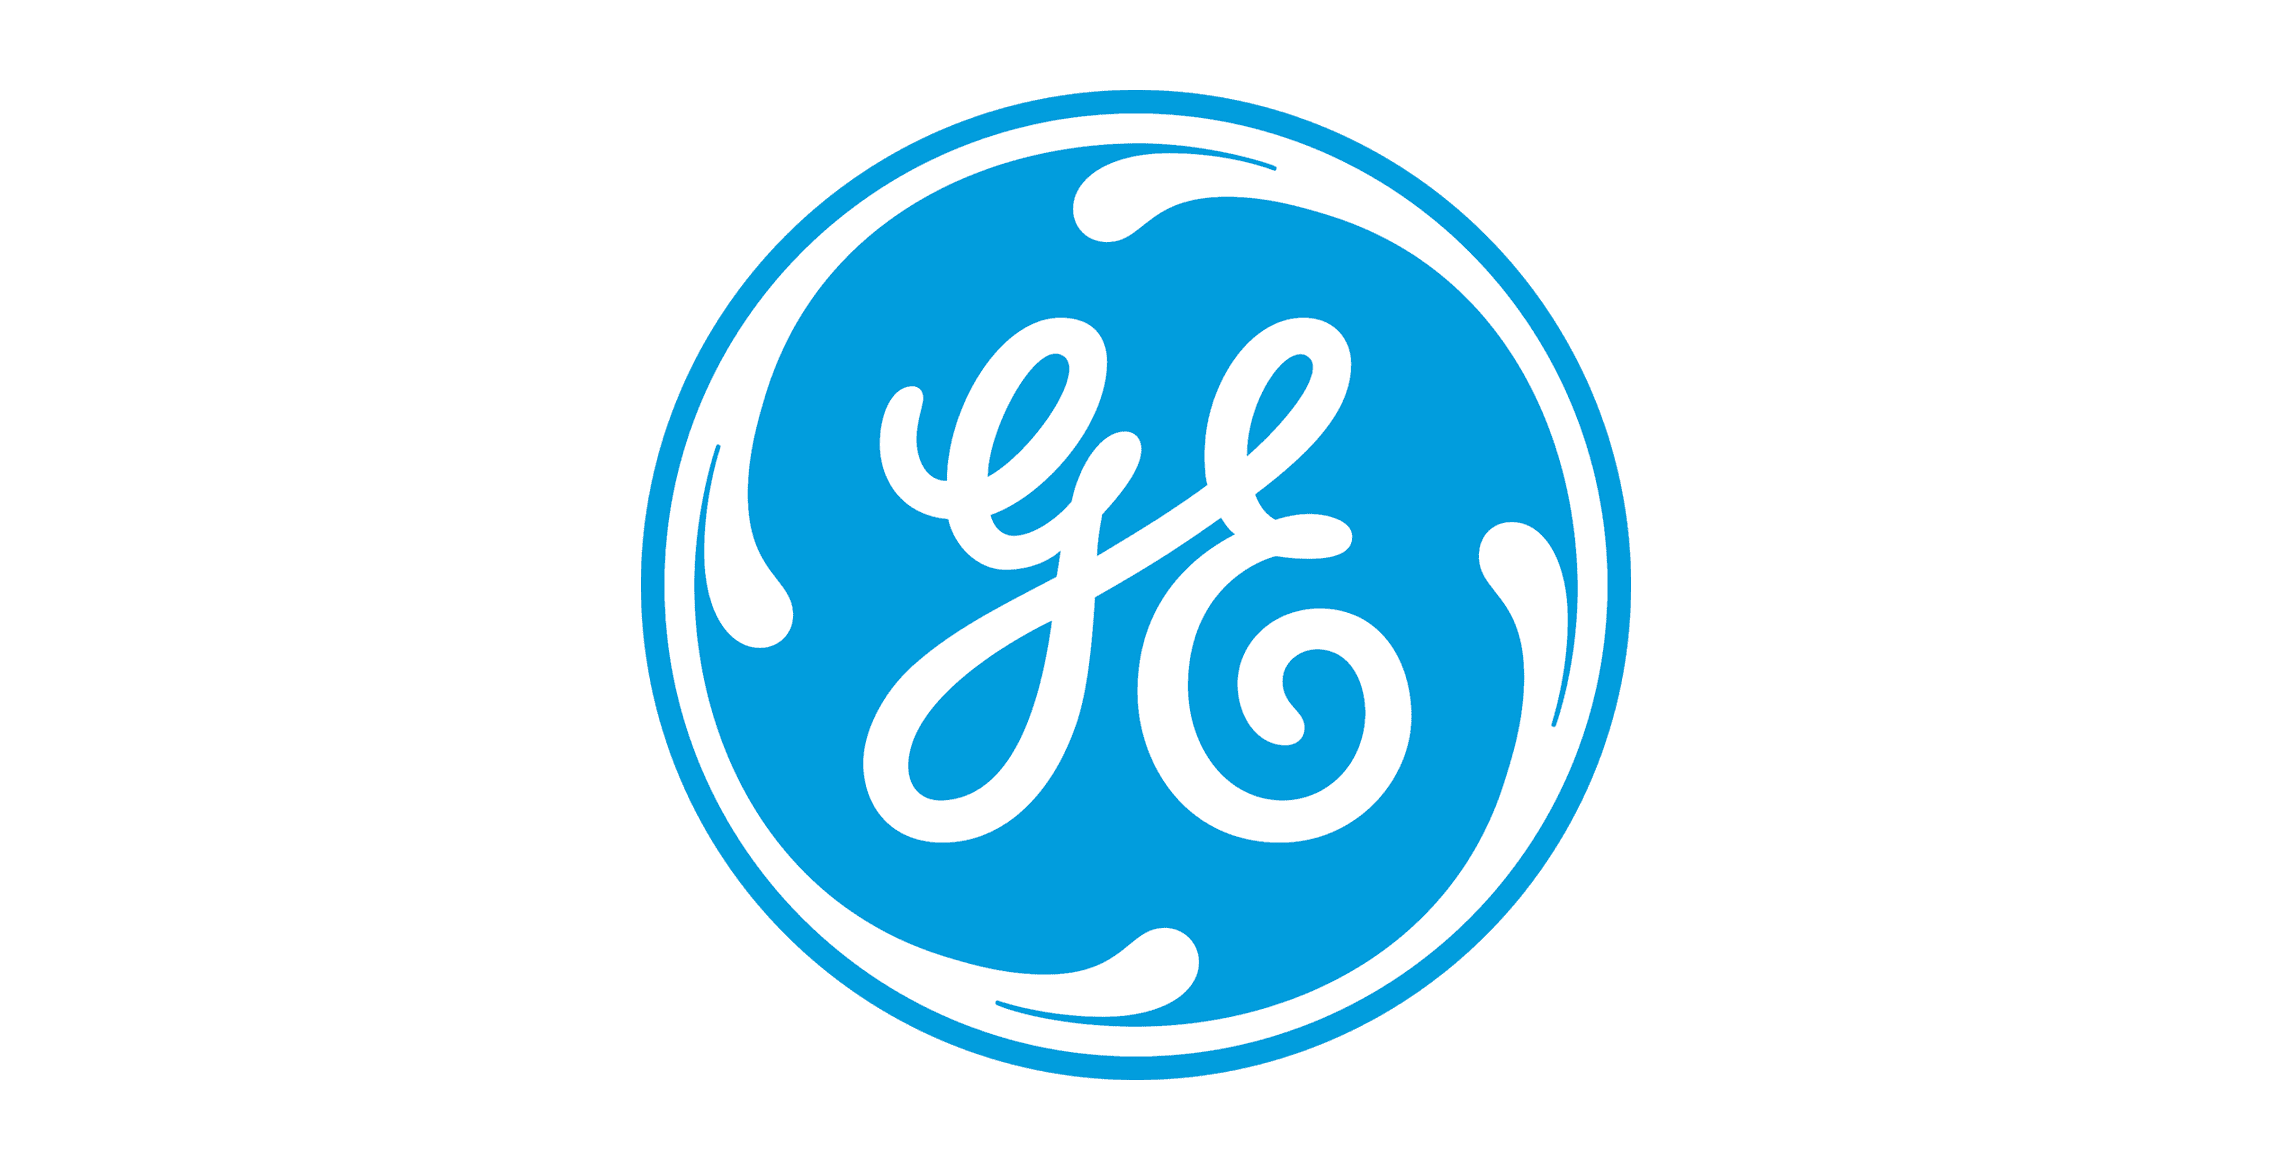 General Electric (opens in a new tab)